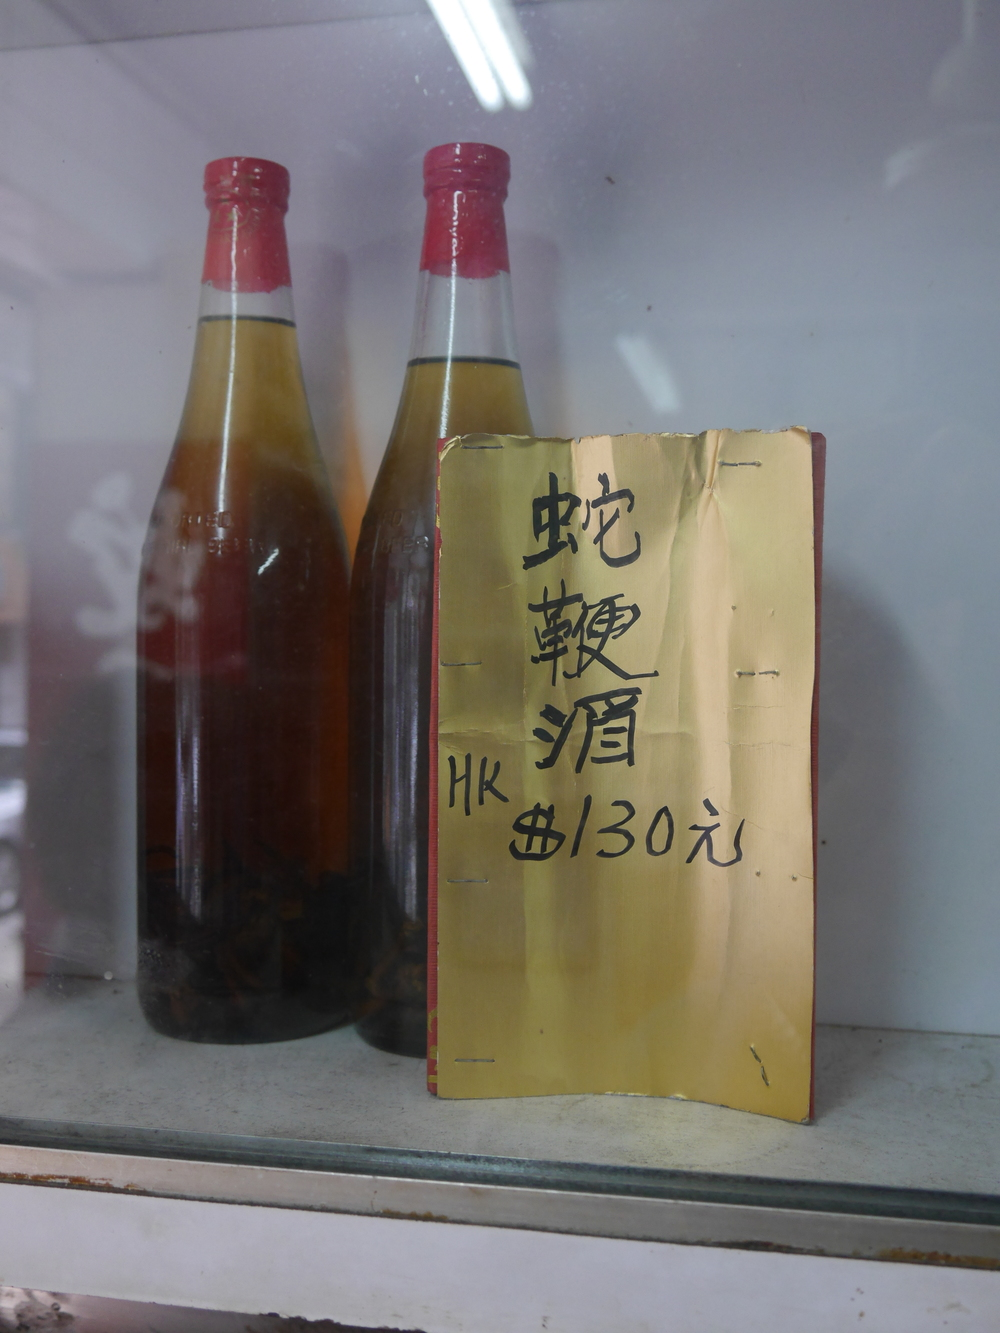 Even fancier (not the gold foil!) snake wine with snake penises. Said to be a potent aphrodisiac.